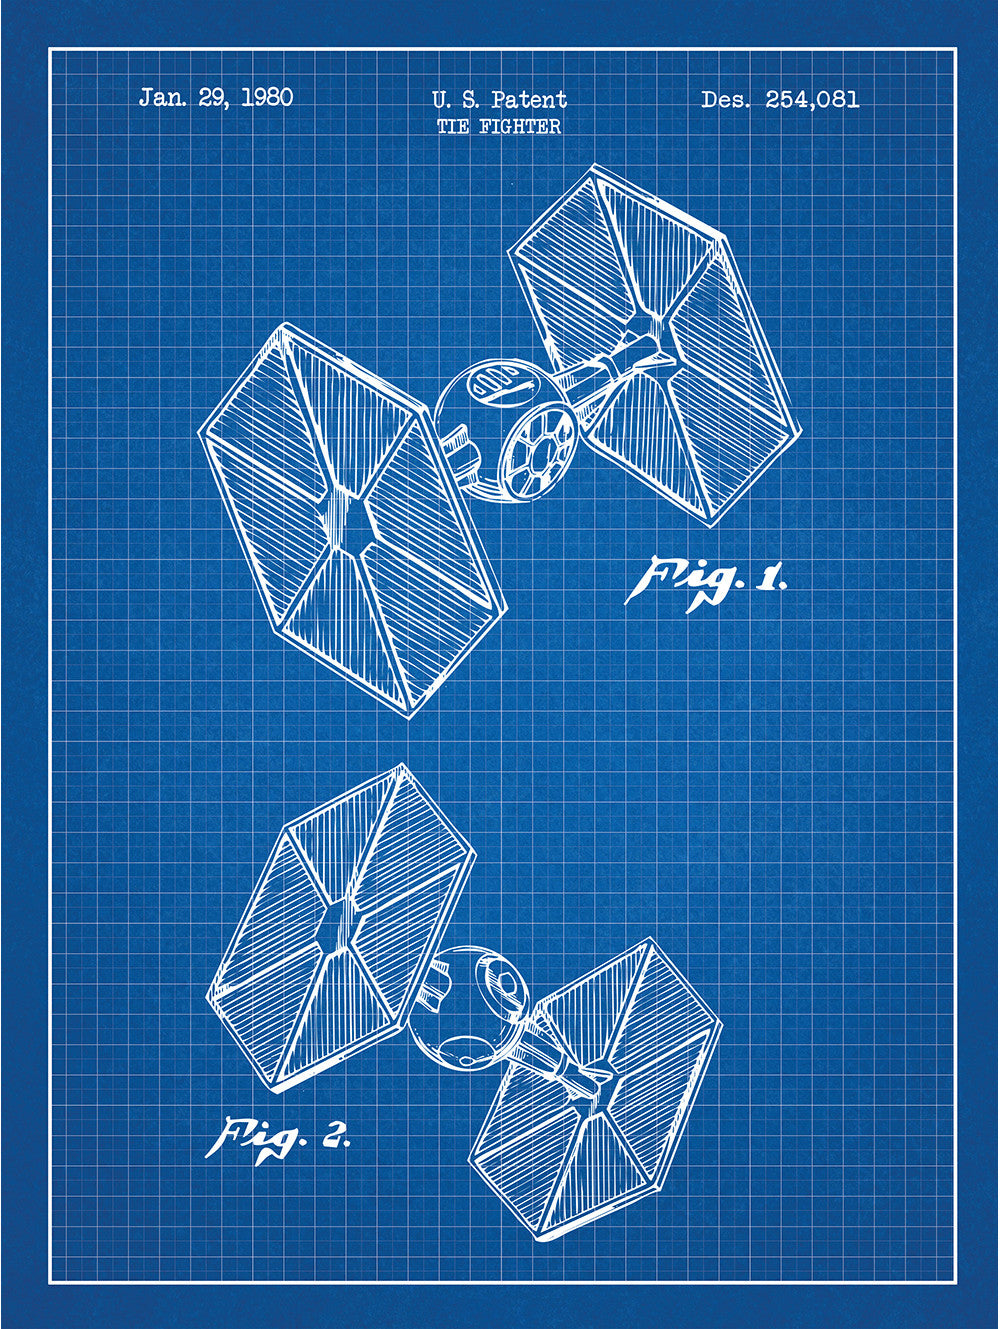 Star Wars Vehicles: Tie Fighter